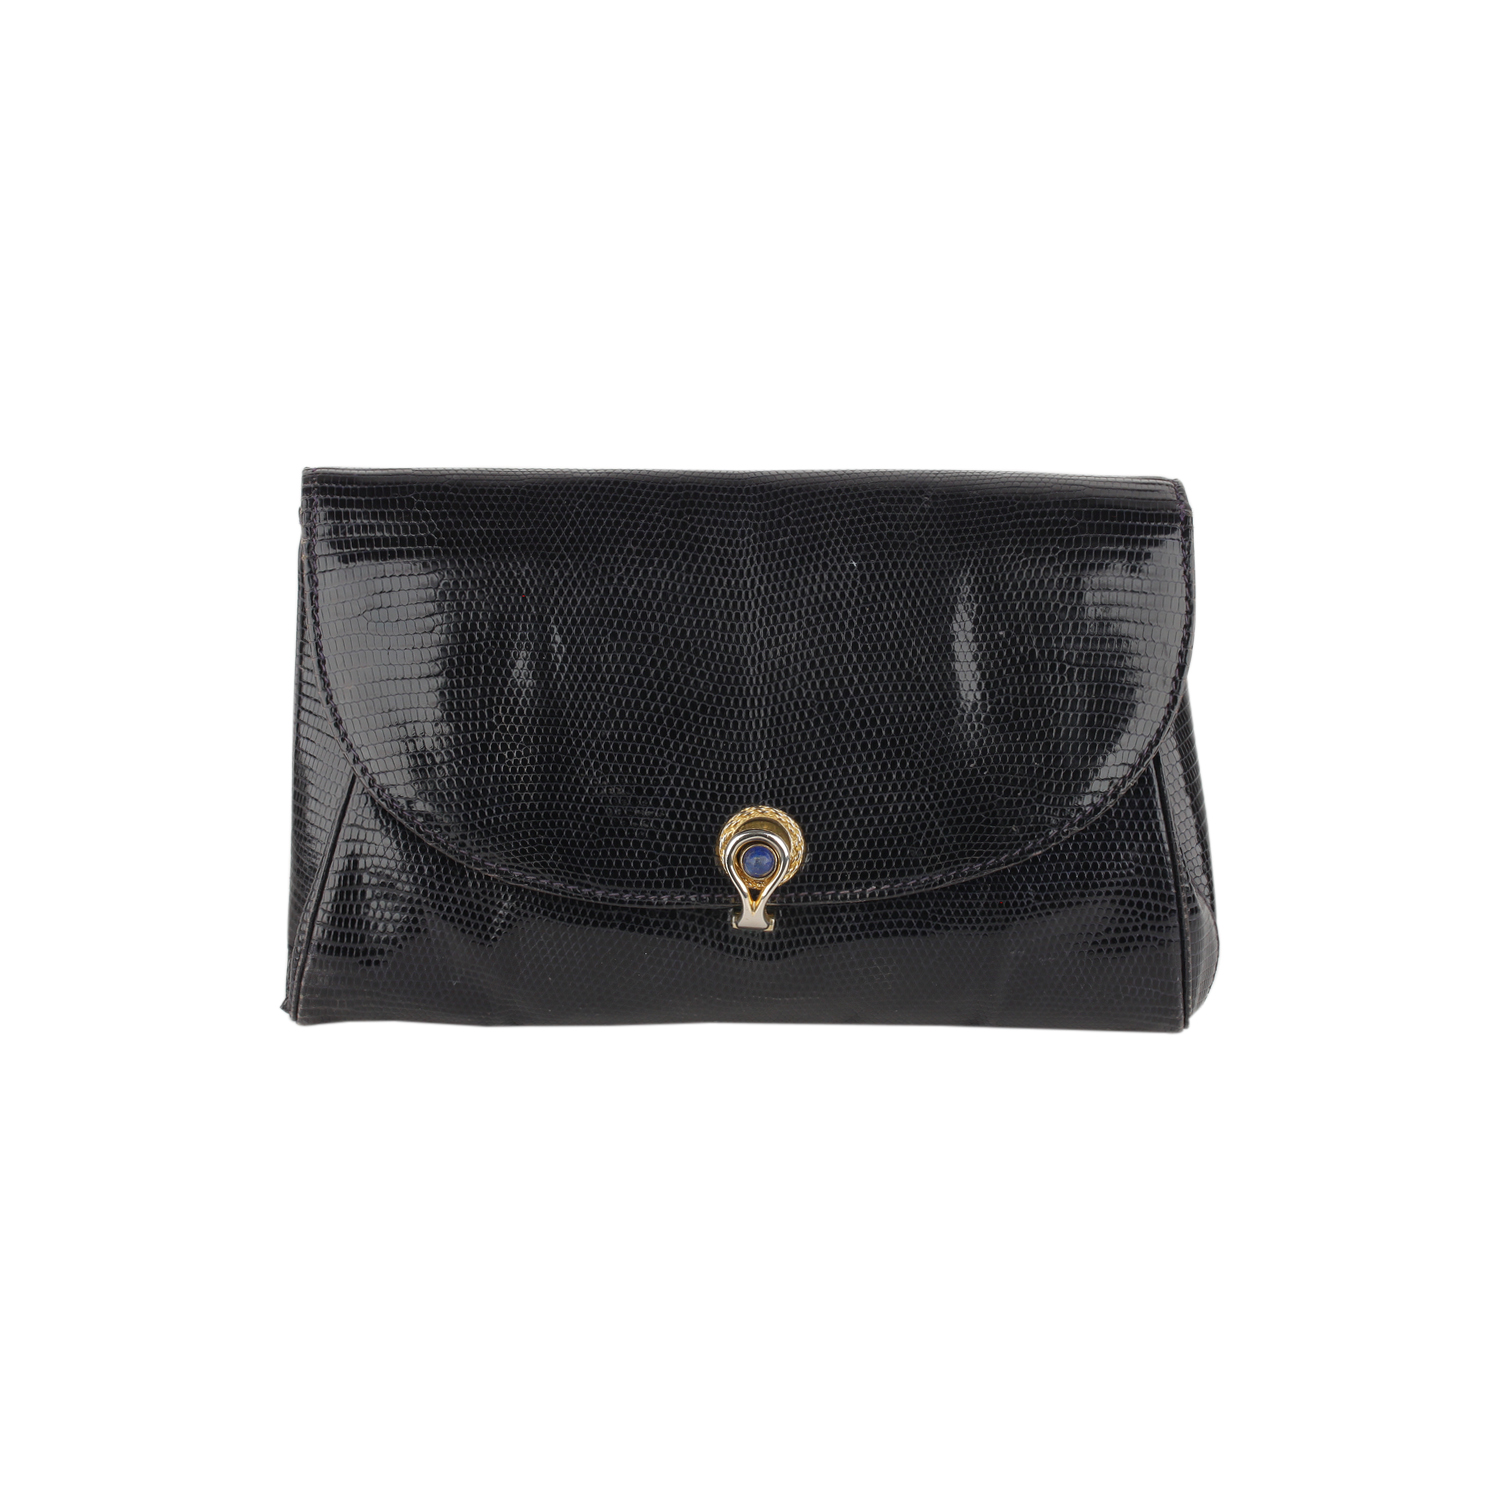 a39bb1c0a2ed Authentic Gucci Vintage Navy Blue Lizard Leather Clutch Evening Bag ...